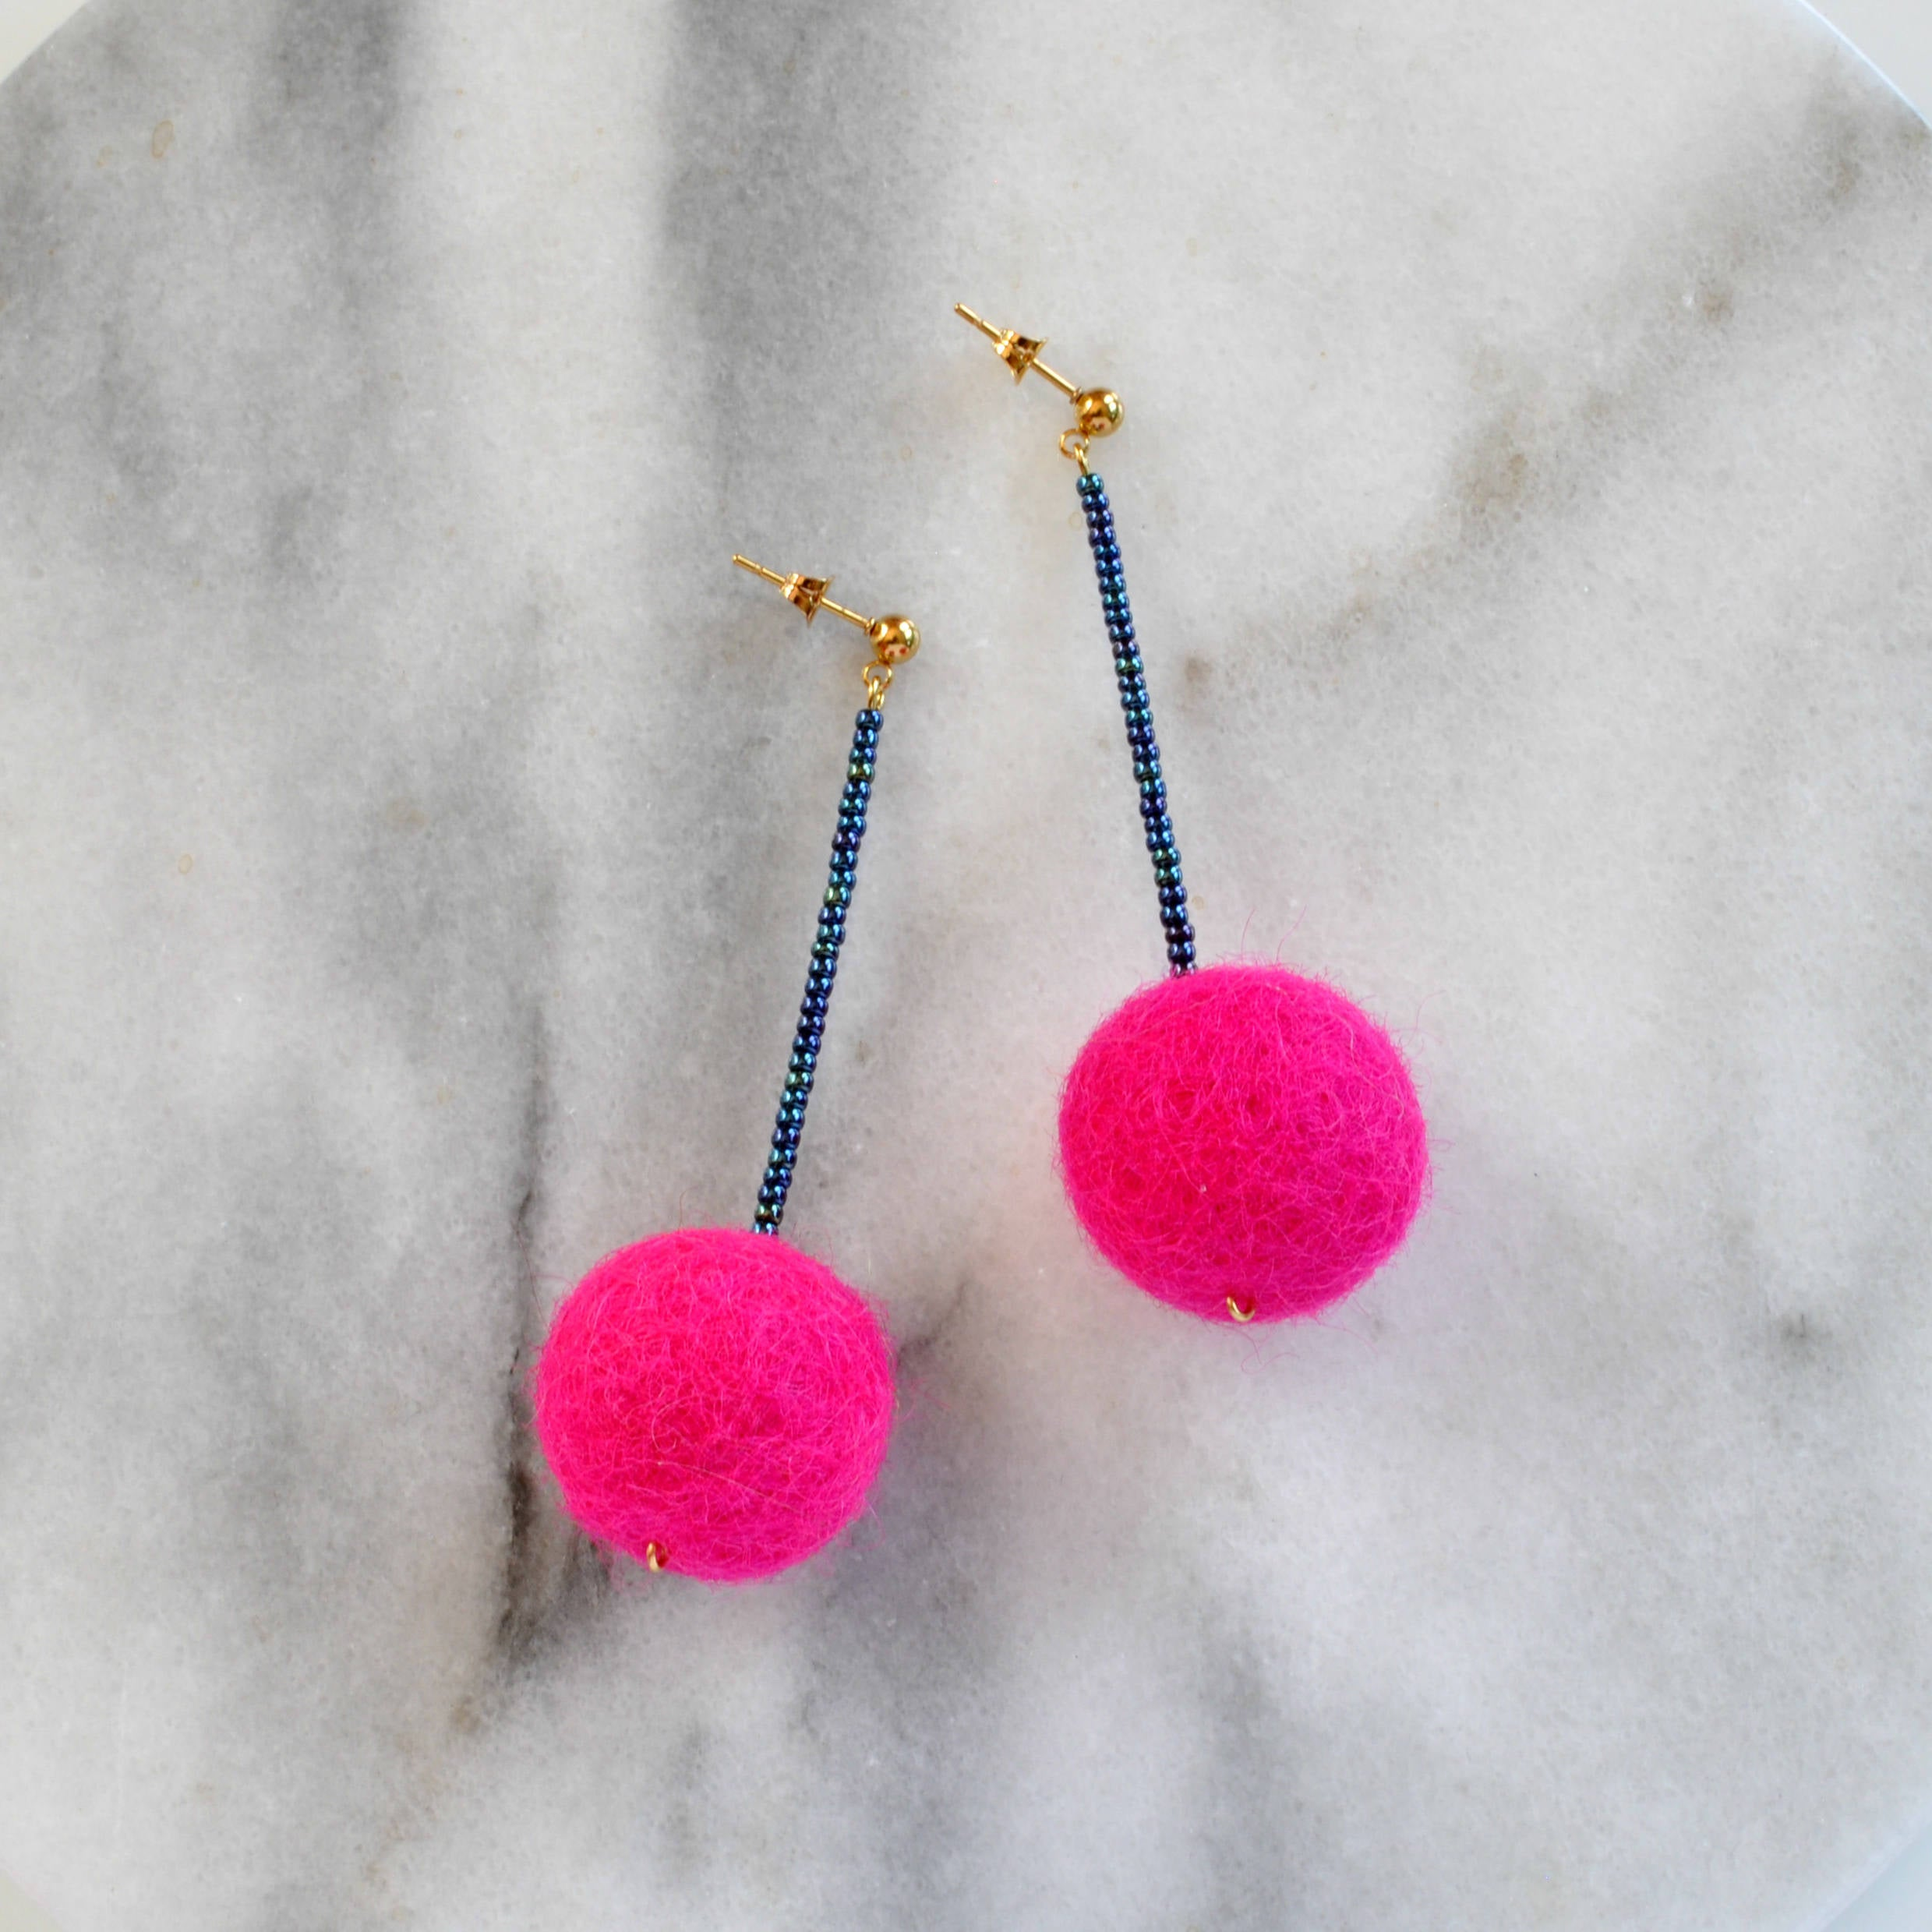 Libby & Smee Hot Pink Pom Pom Earrings with teal beads, still life